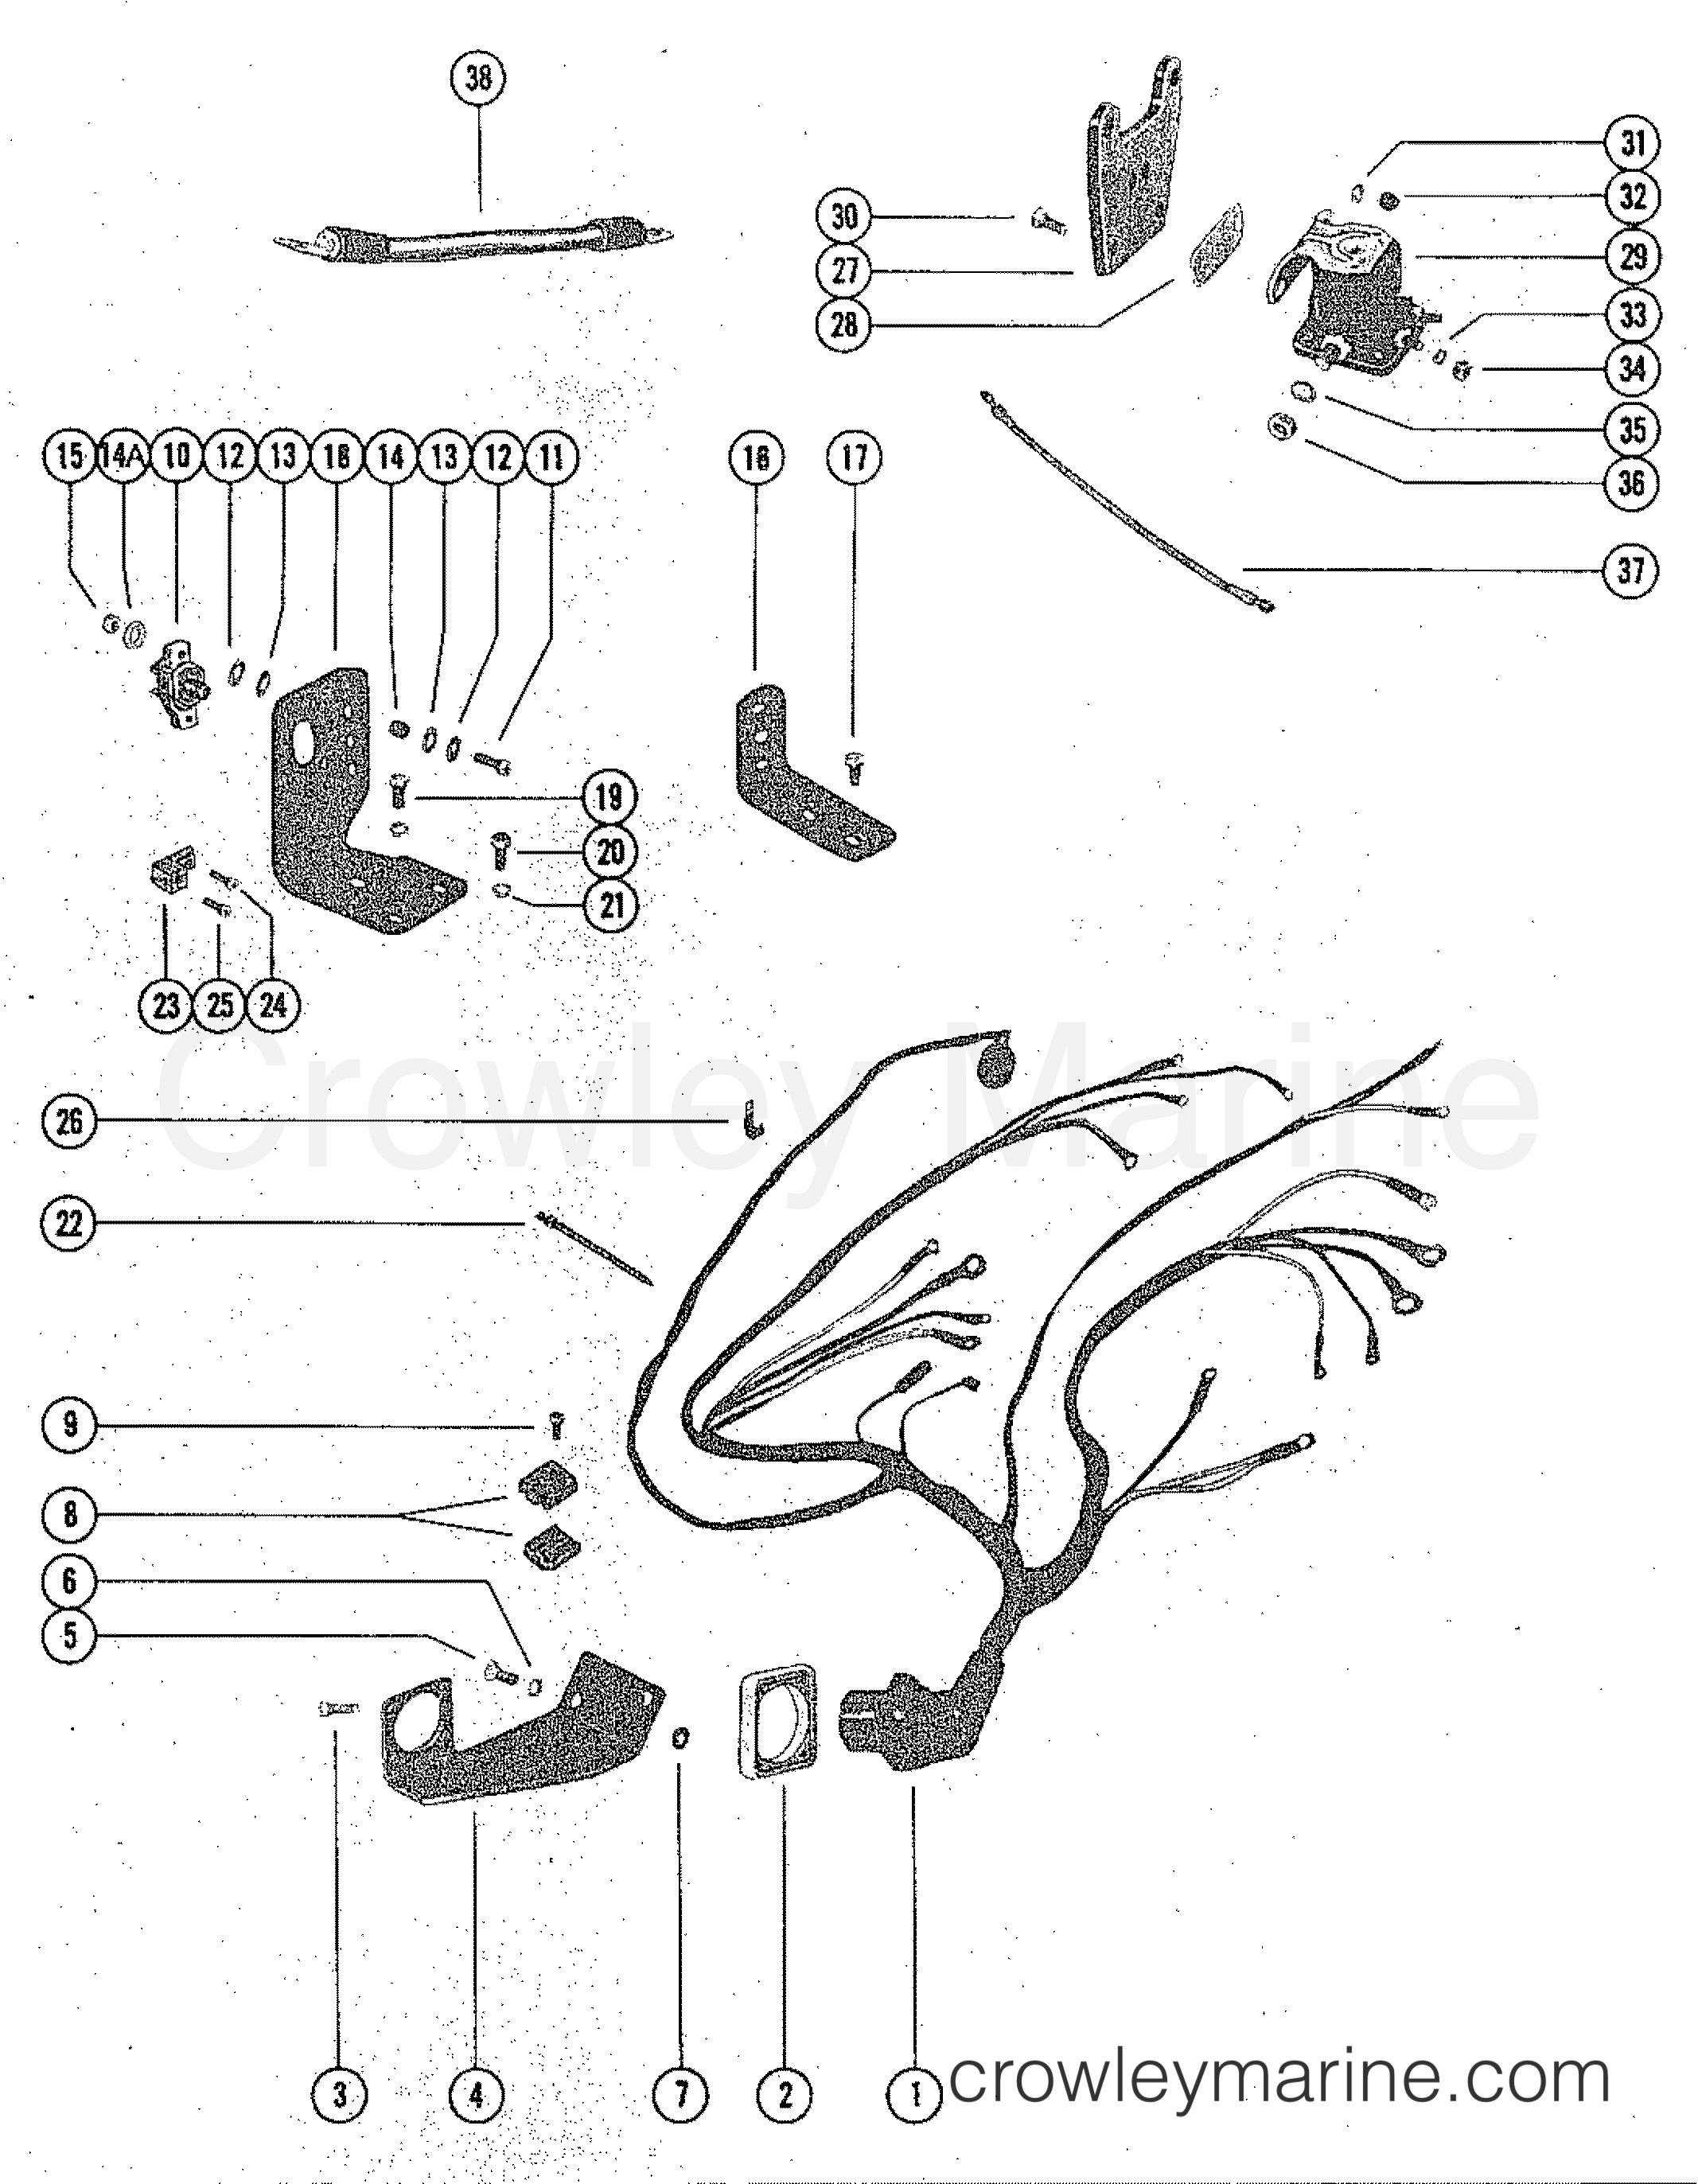 Mercruiser 888 Trim Wiring Diagram Posts 470 Harness And Starter Solenoid 1975 2888205